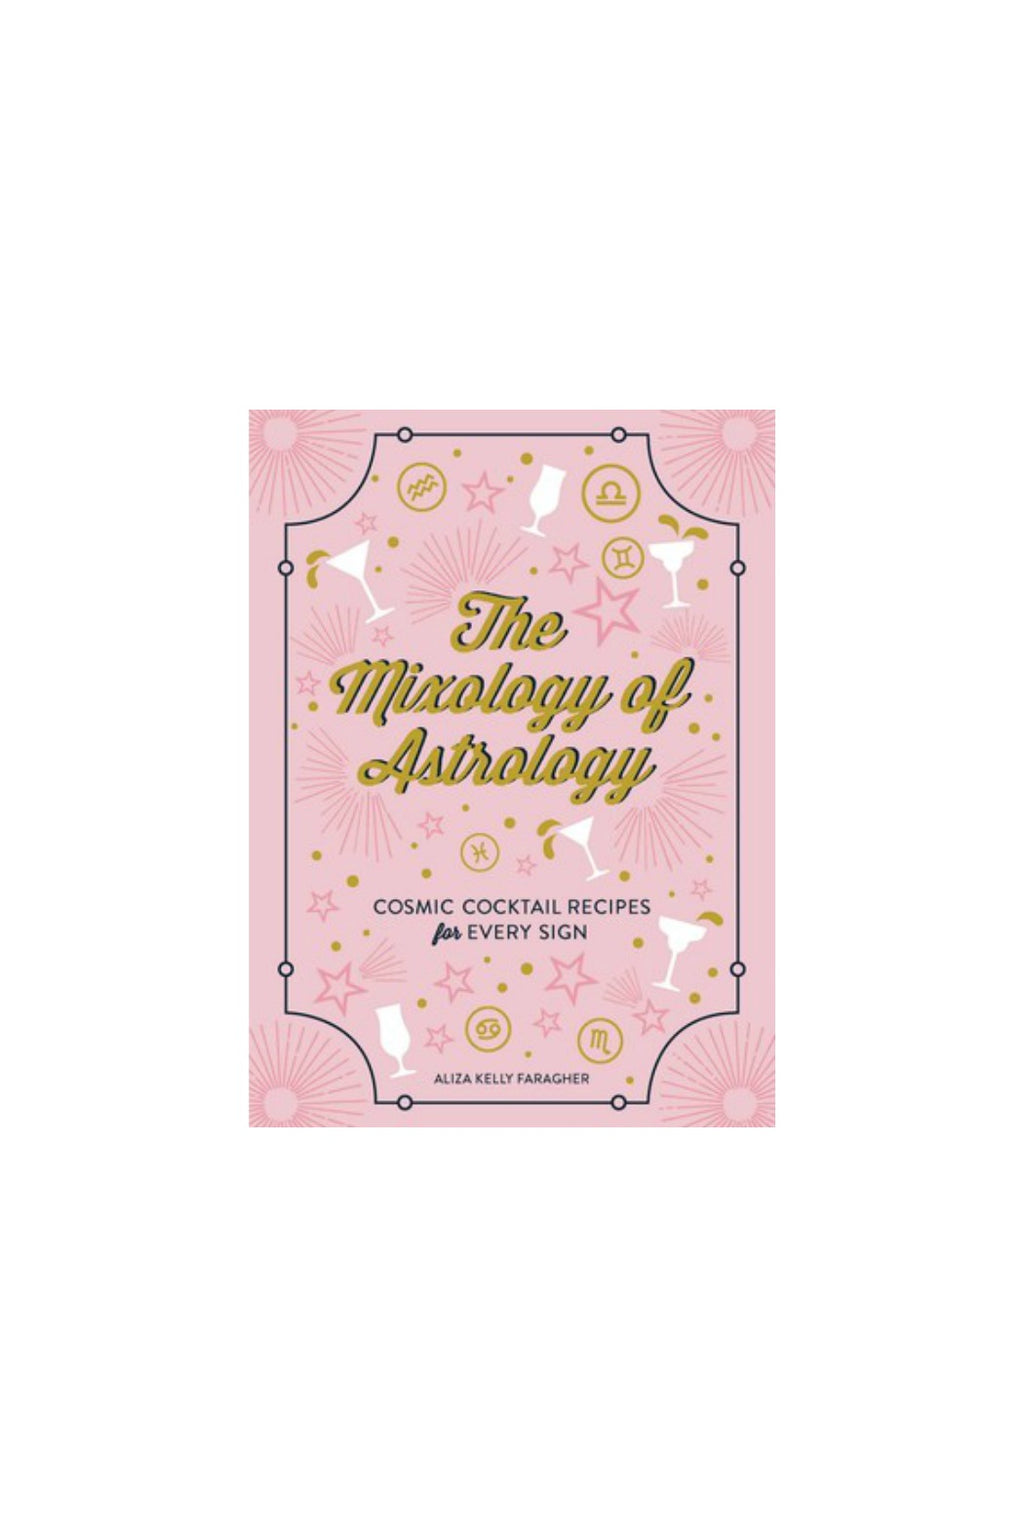 The Mixology of Astrology Cosmic Cocktail Recipes for Every Sign By Aliza Kelly